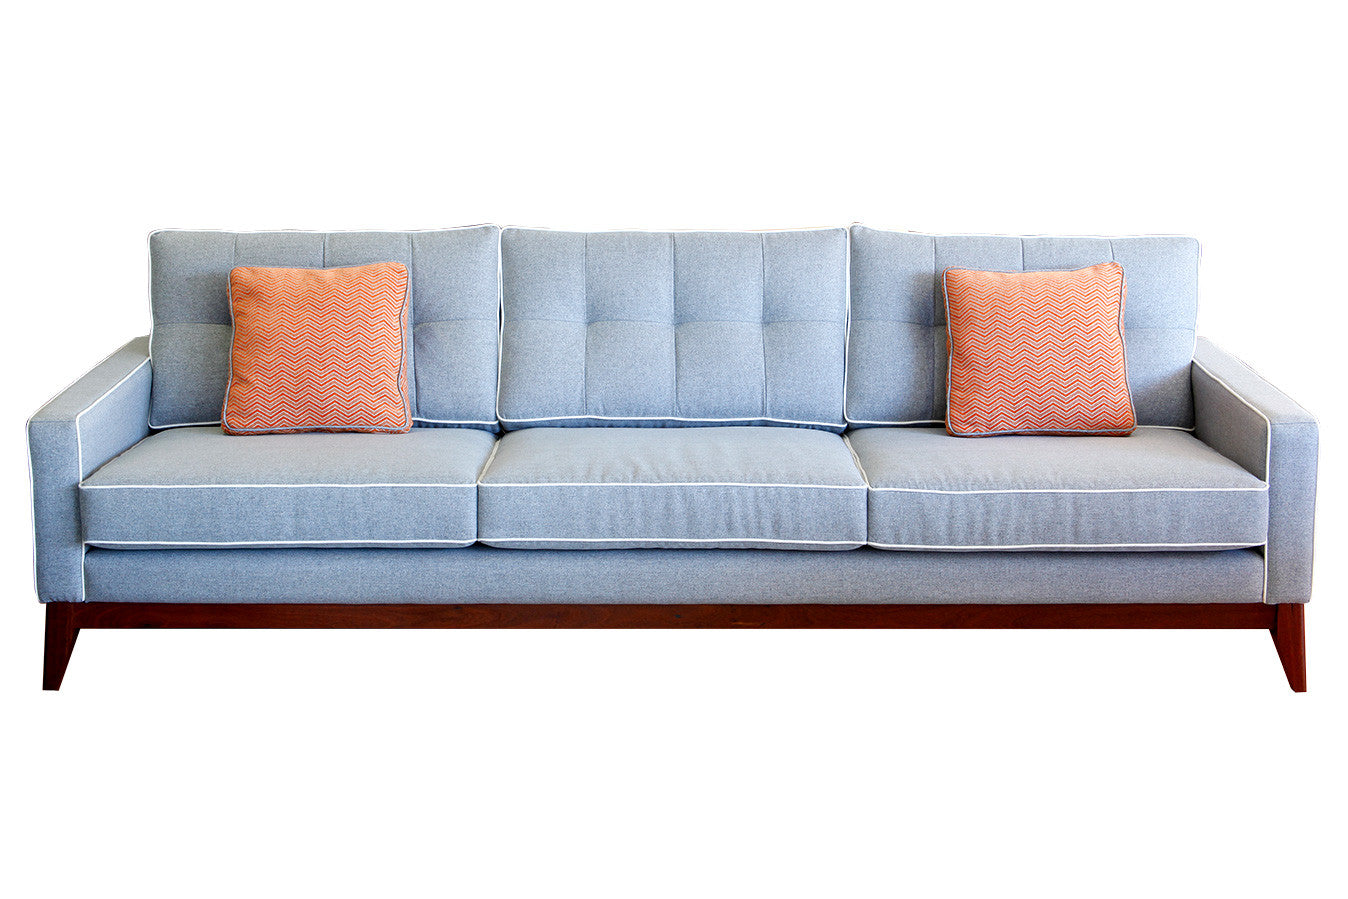 ... The Caz Fifties Sofa With Jarrah Timber Base   Leather Or Fabric   Mad  Men Inspired ...